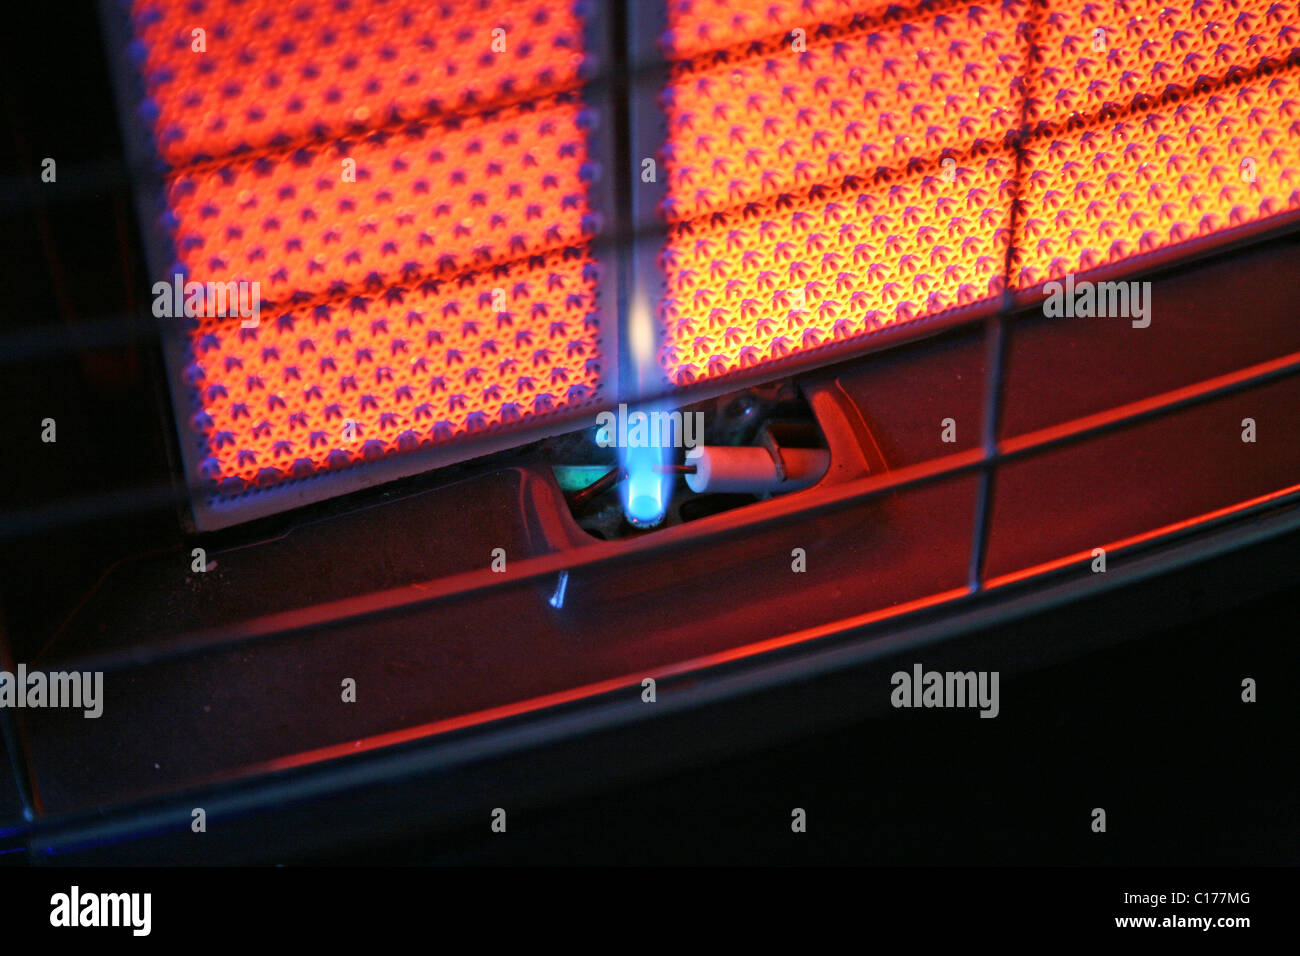 The Pilot Light On A Butane Gas Heater With The Red Fire Bricks Lit Up